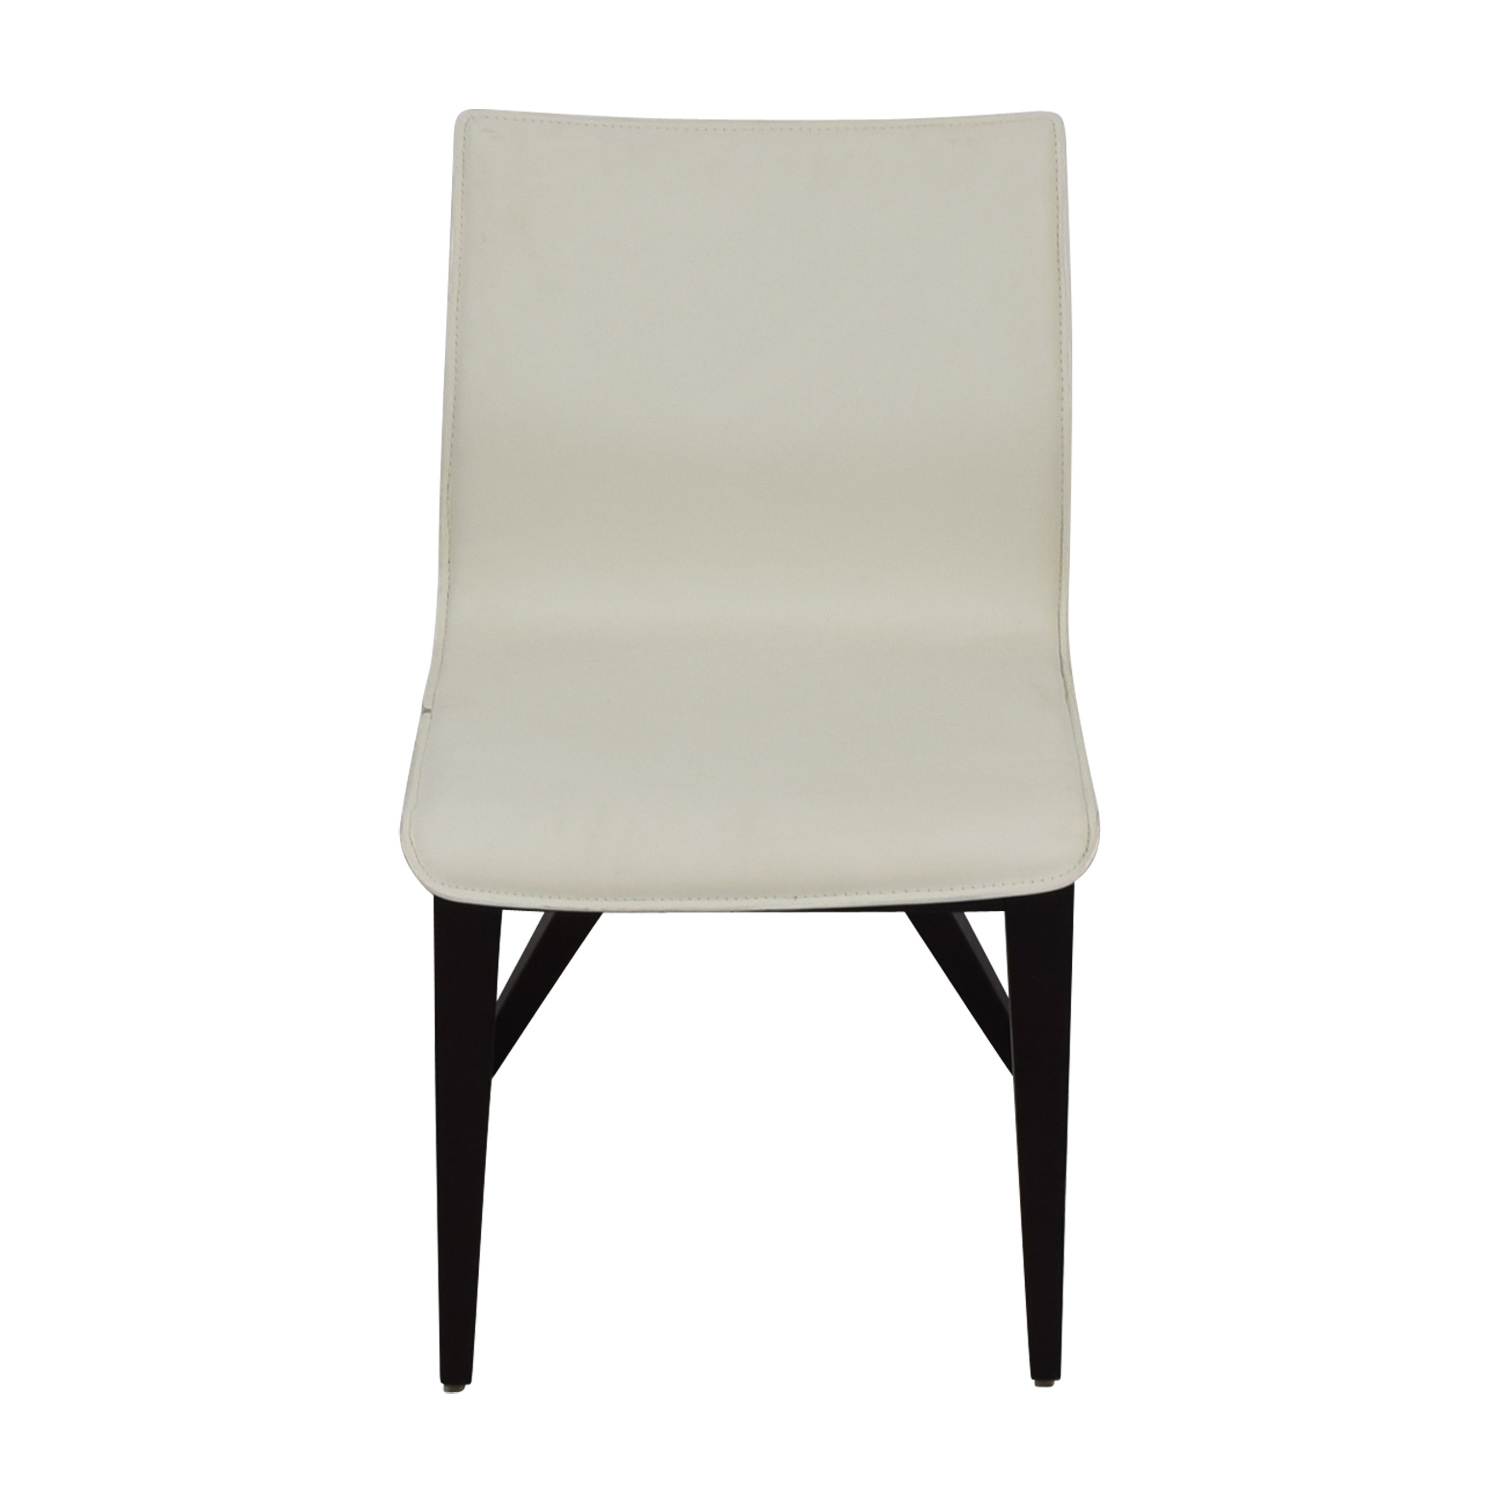 53 off cliff young cliff young x back white leather chair chairs